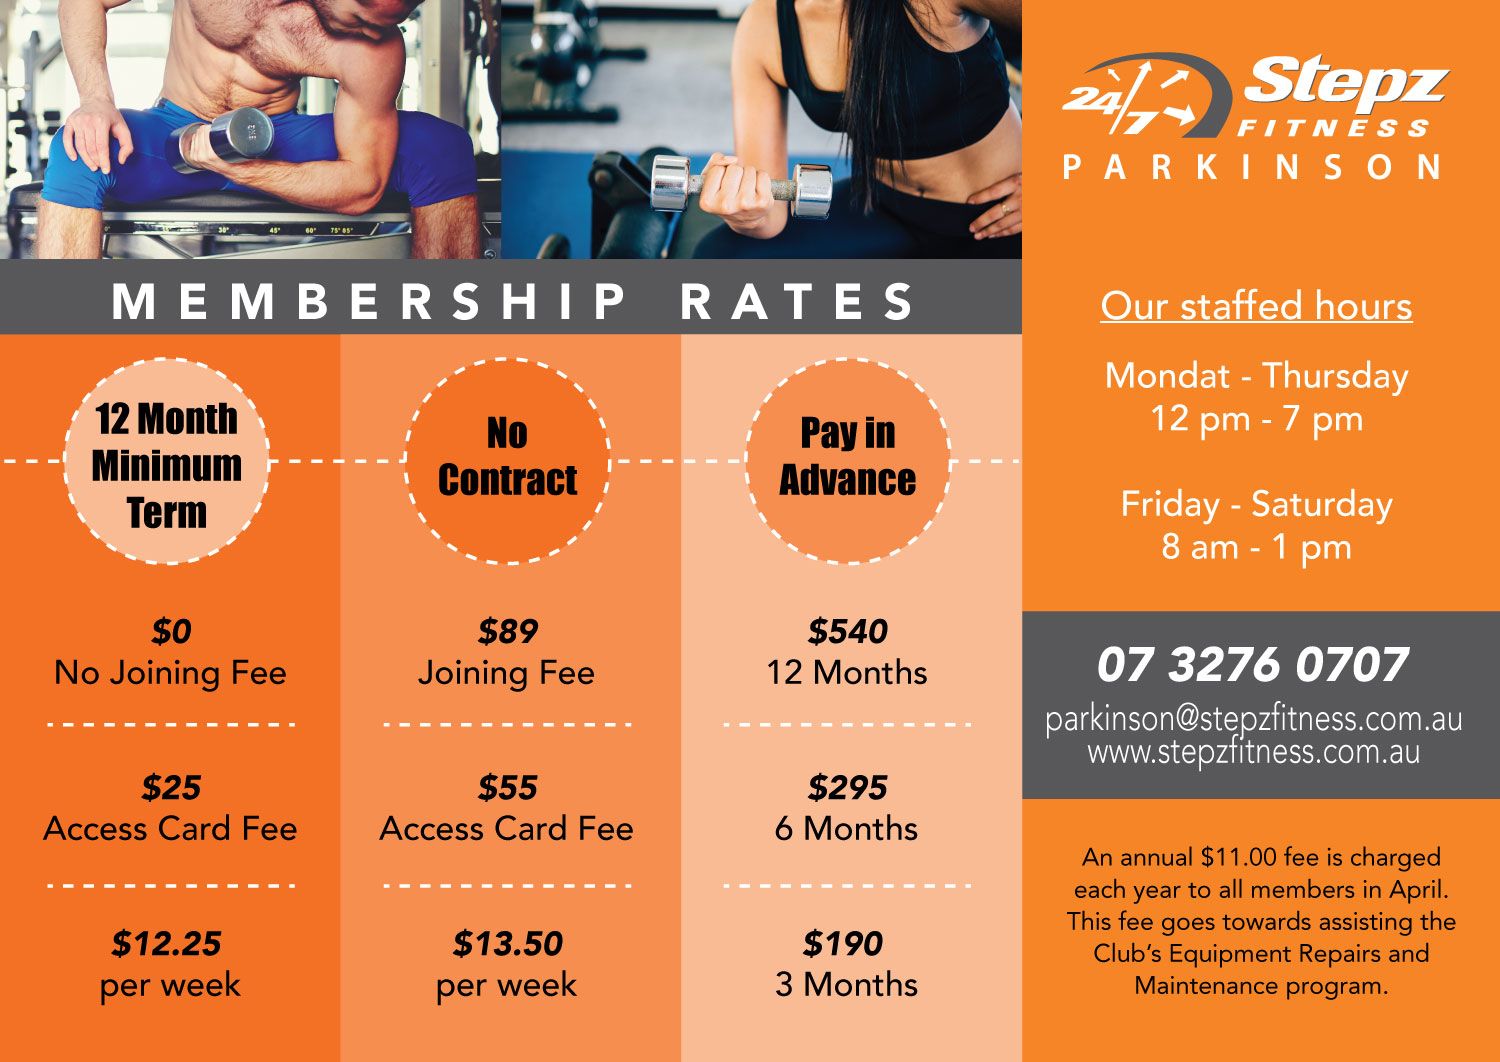 elegant playful fitness flyer design for stepz fitness parkinson